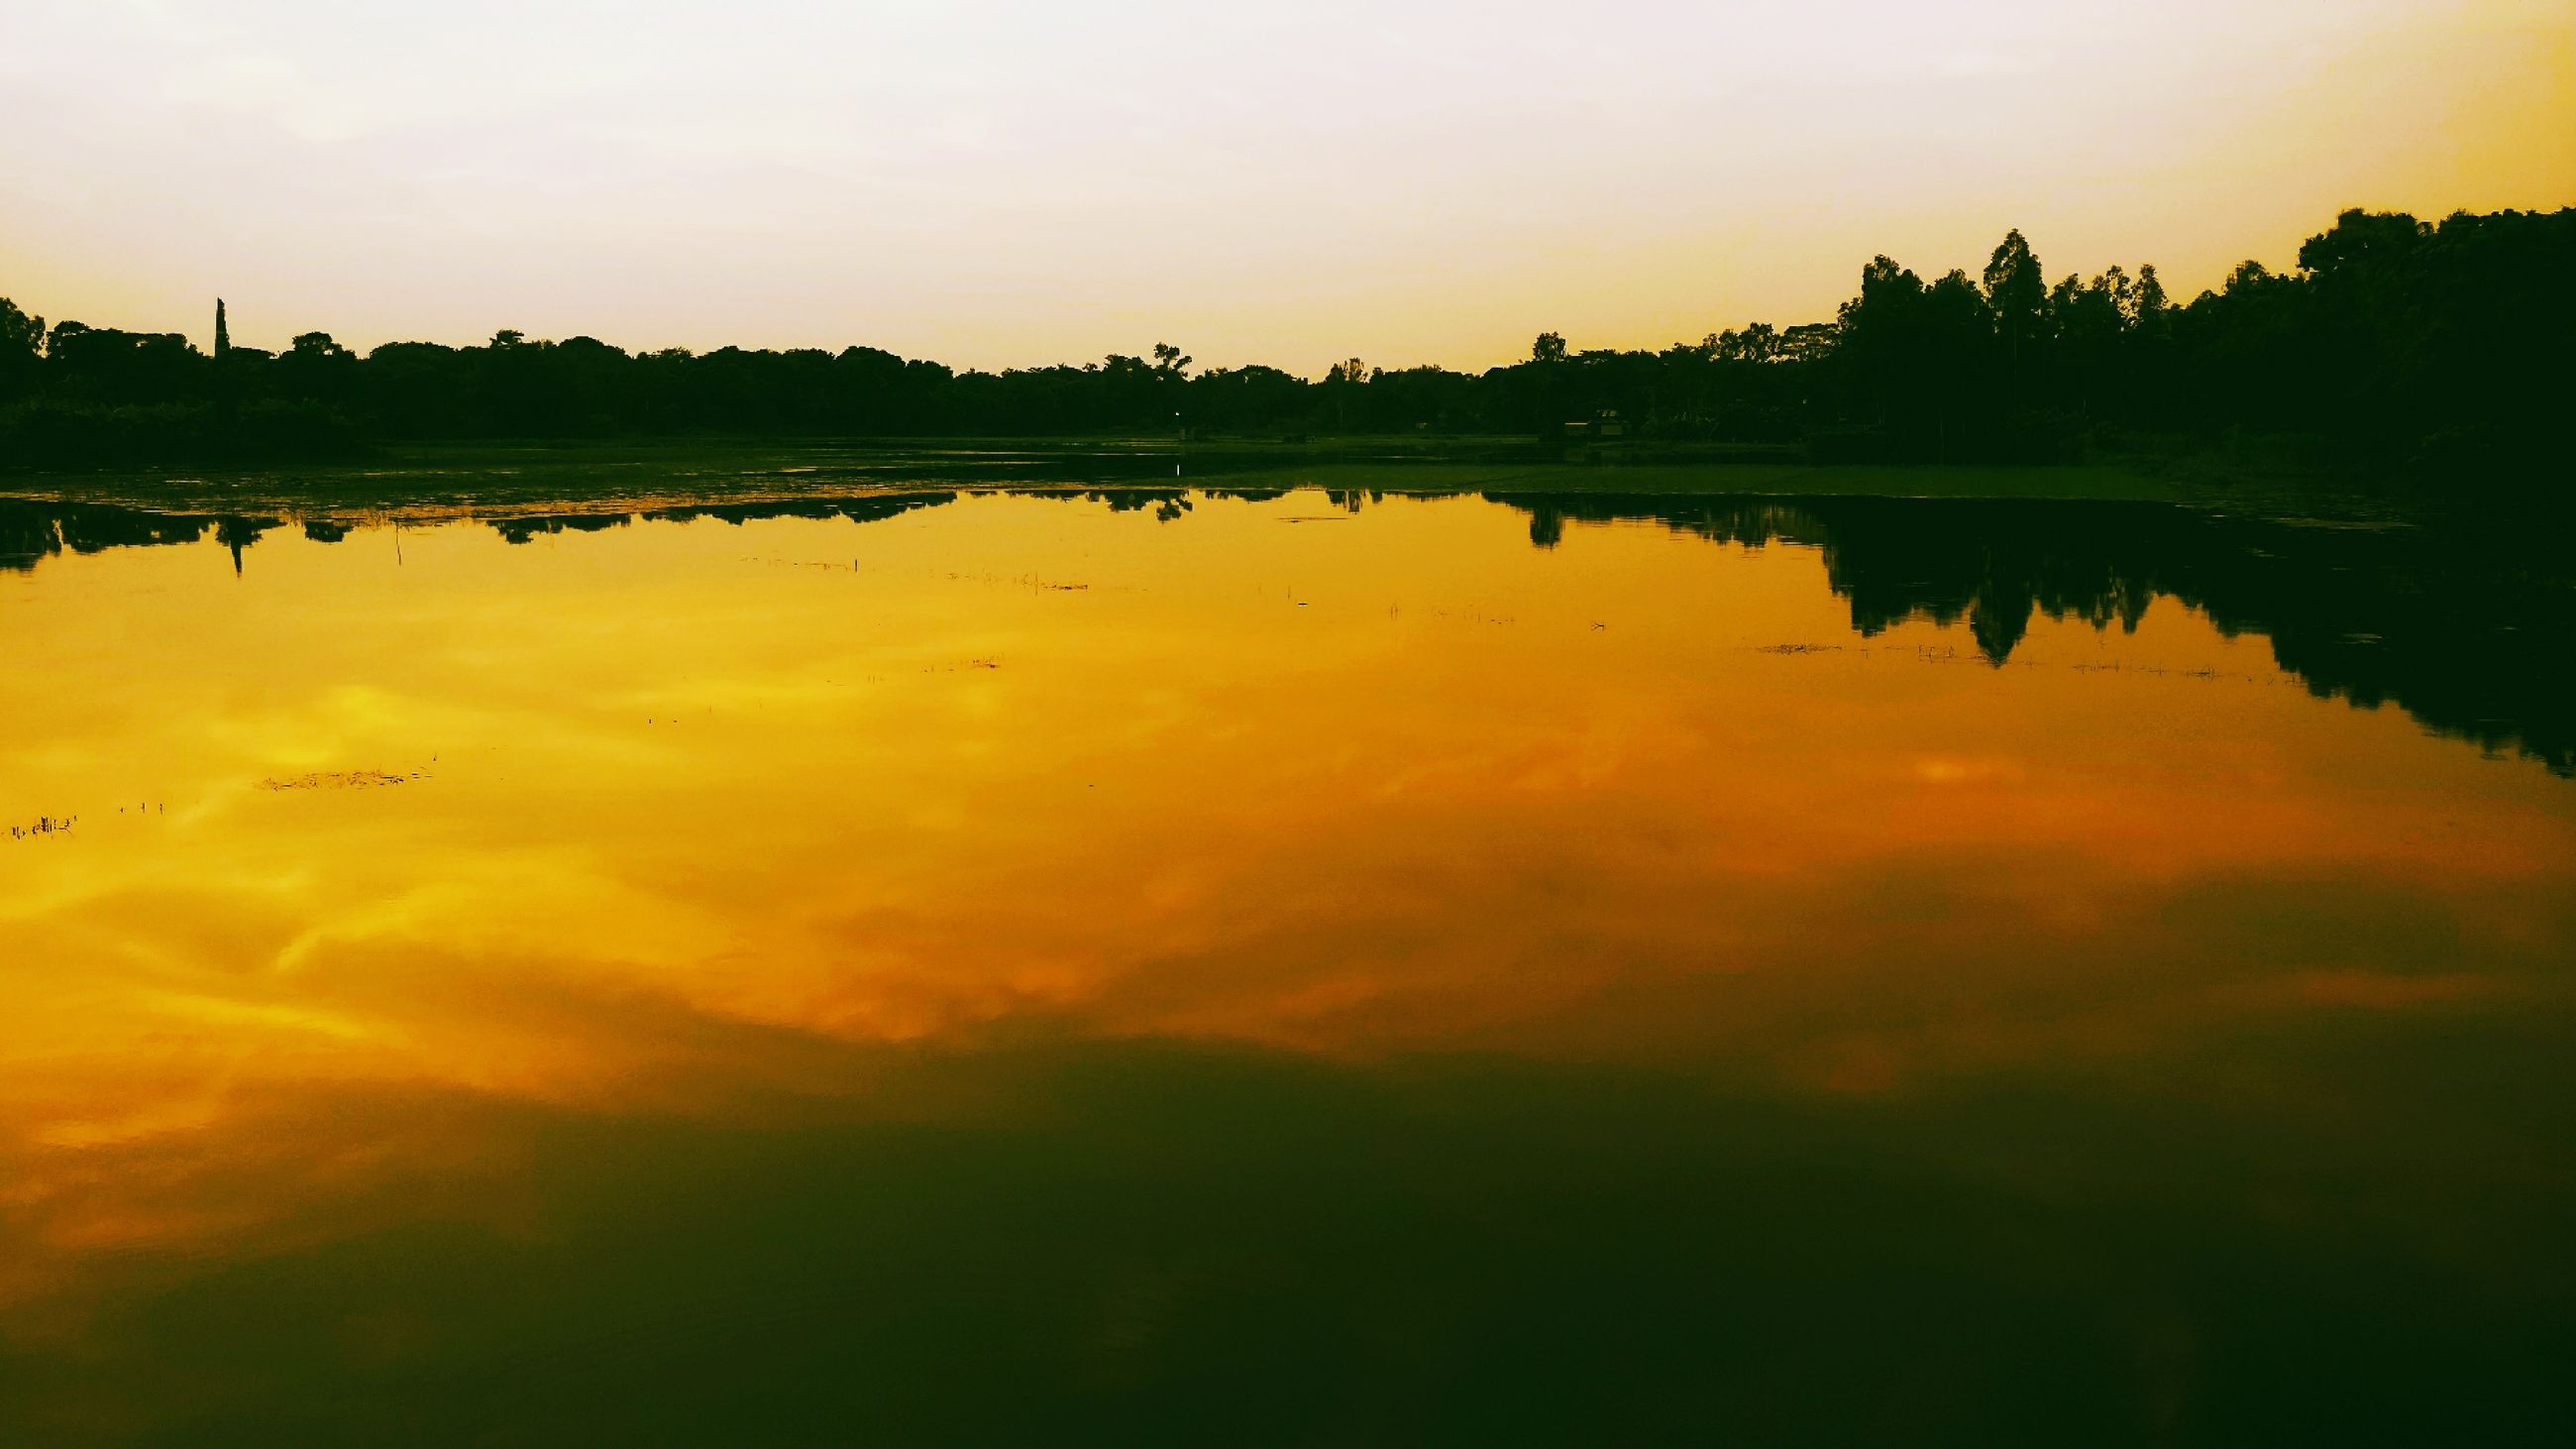 reflection, sunset, water, lake, nature, scenics, tranquil scene, silhouette, standing water, tranquility, beauty in nature, sky, outdoors, waterfront, no people, tree, day